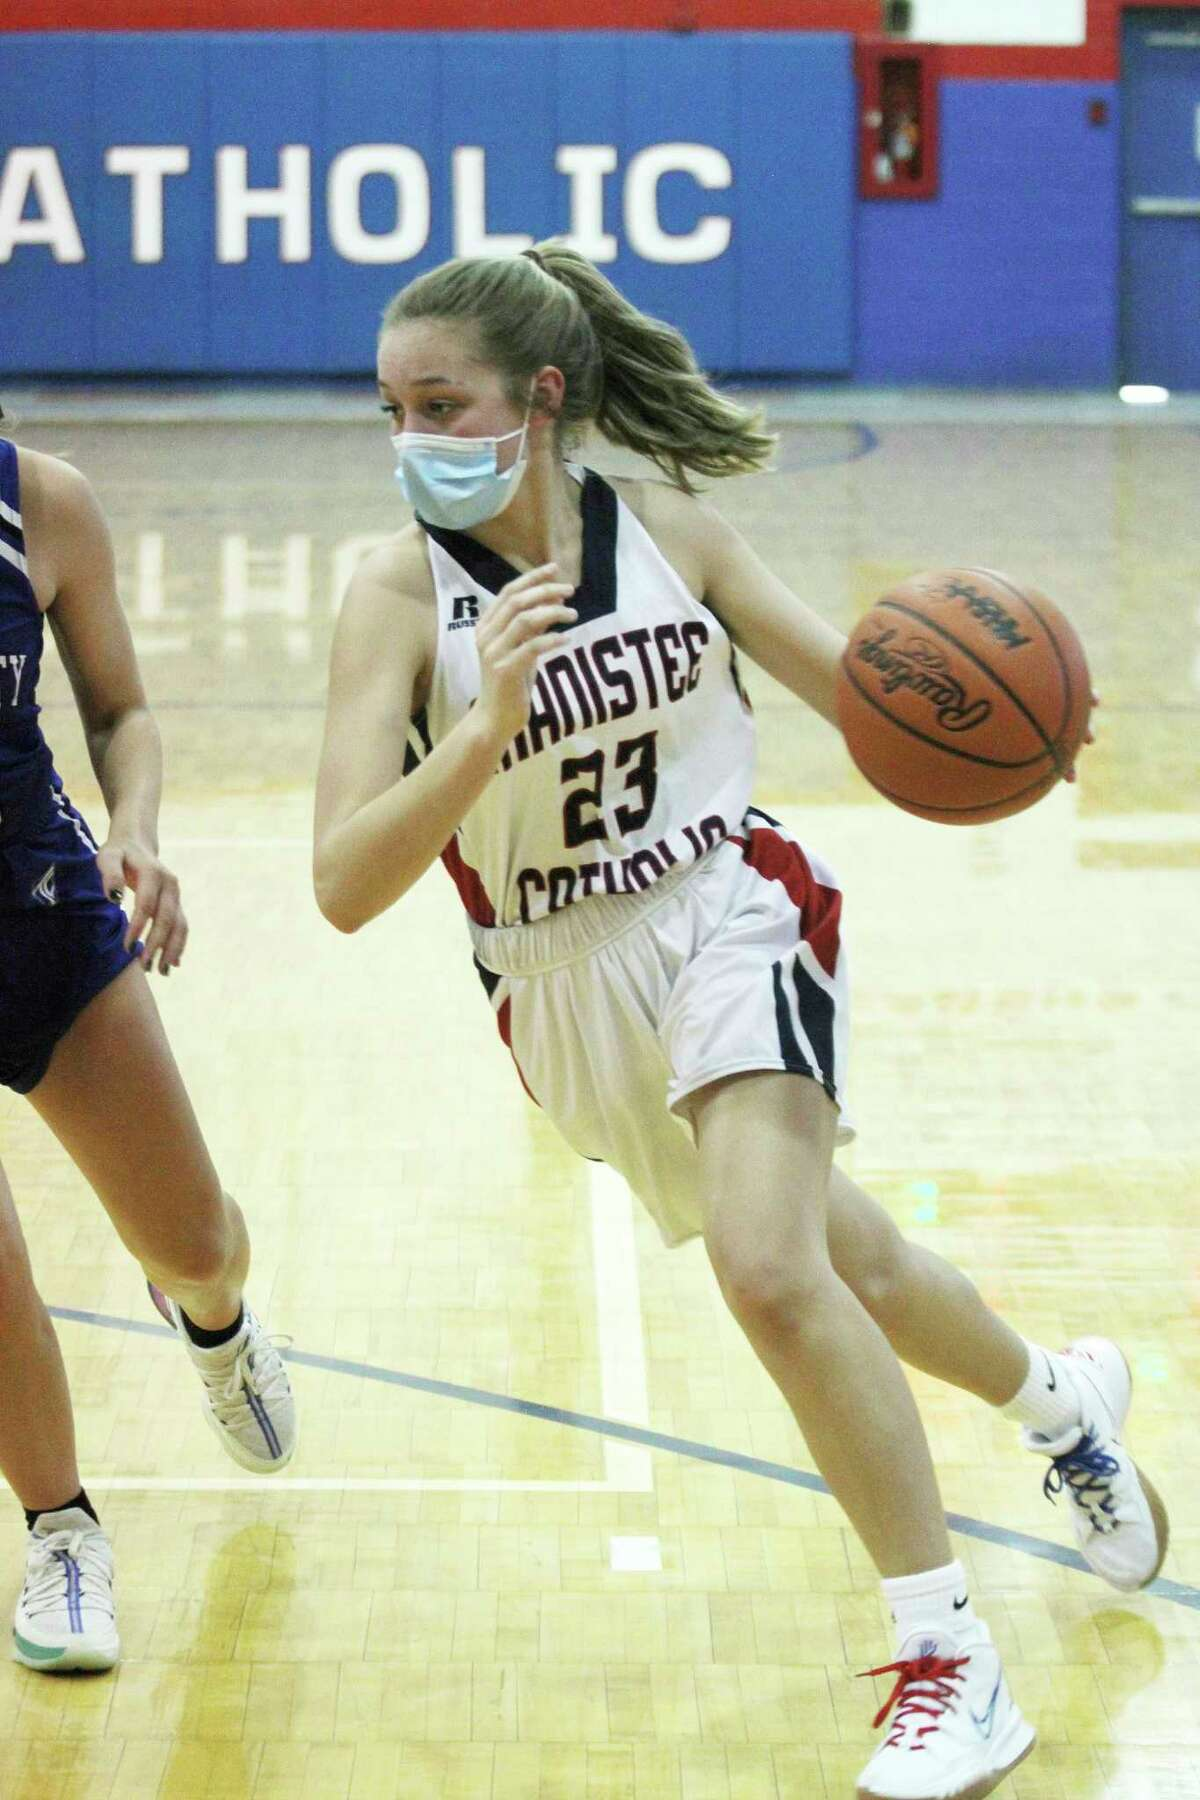 Manistee Catholic Central's Rachel Callesen earned the Team First Award by the Basketball Coaches Association of Michigan. (News Advocate file photo)